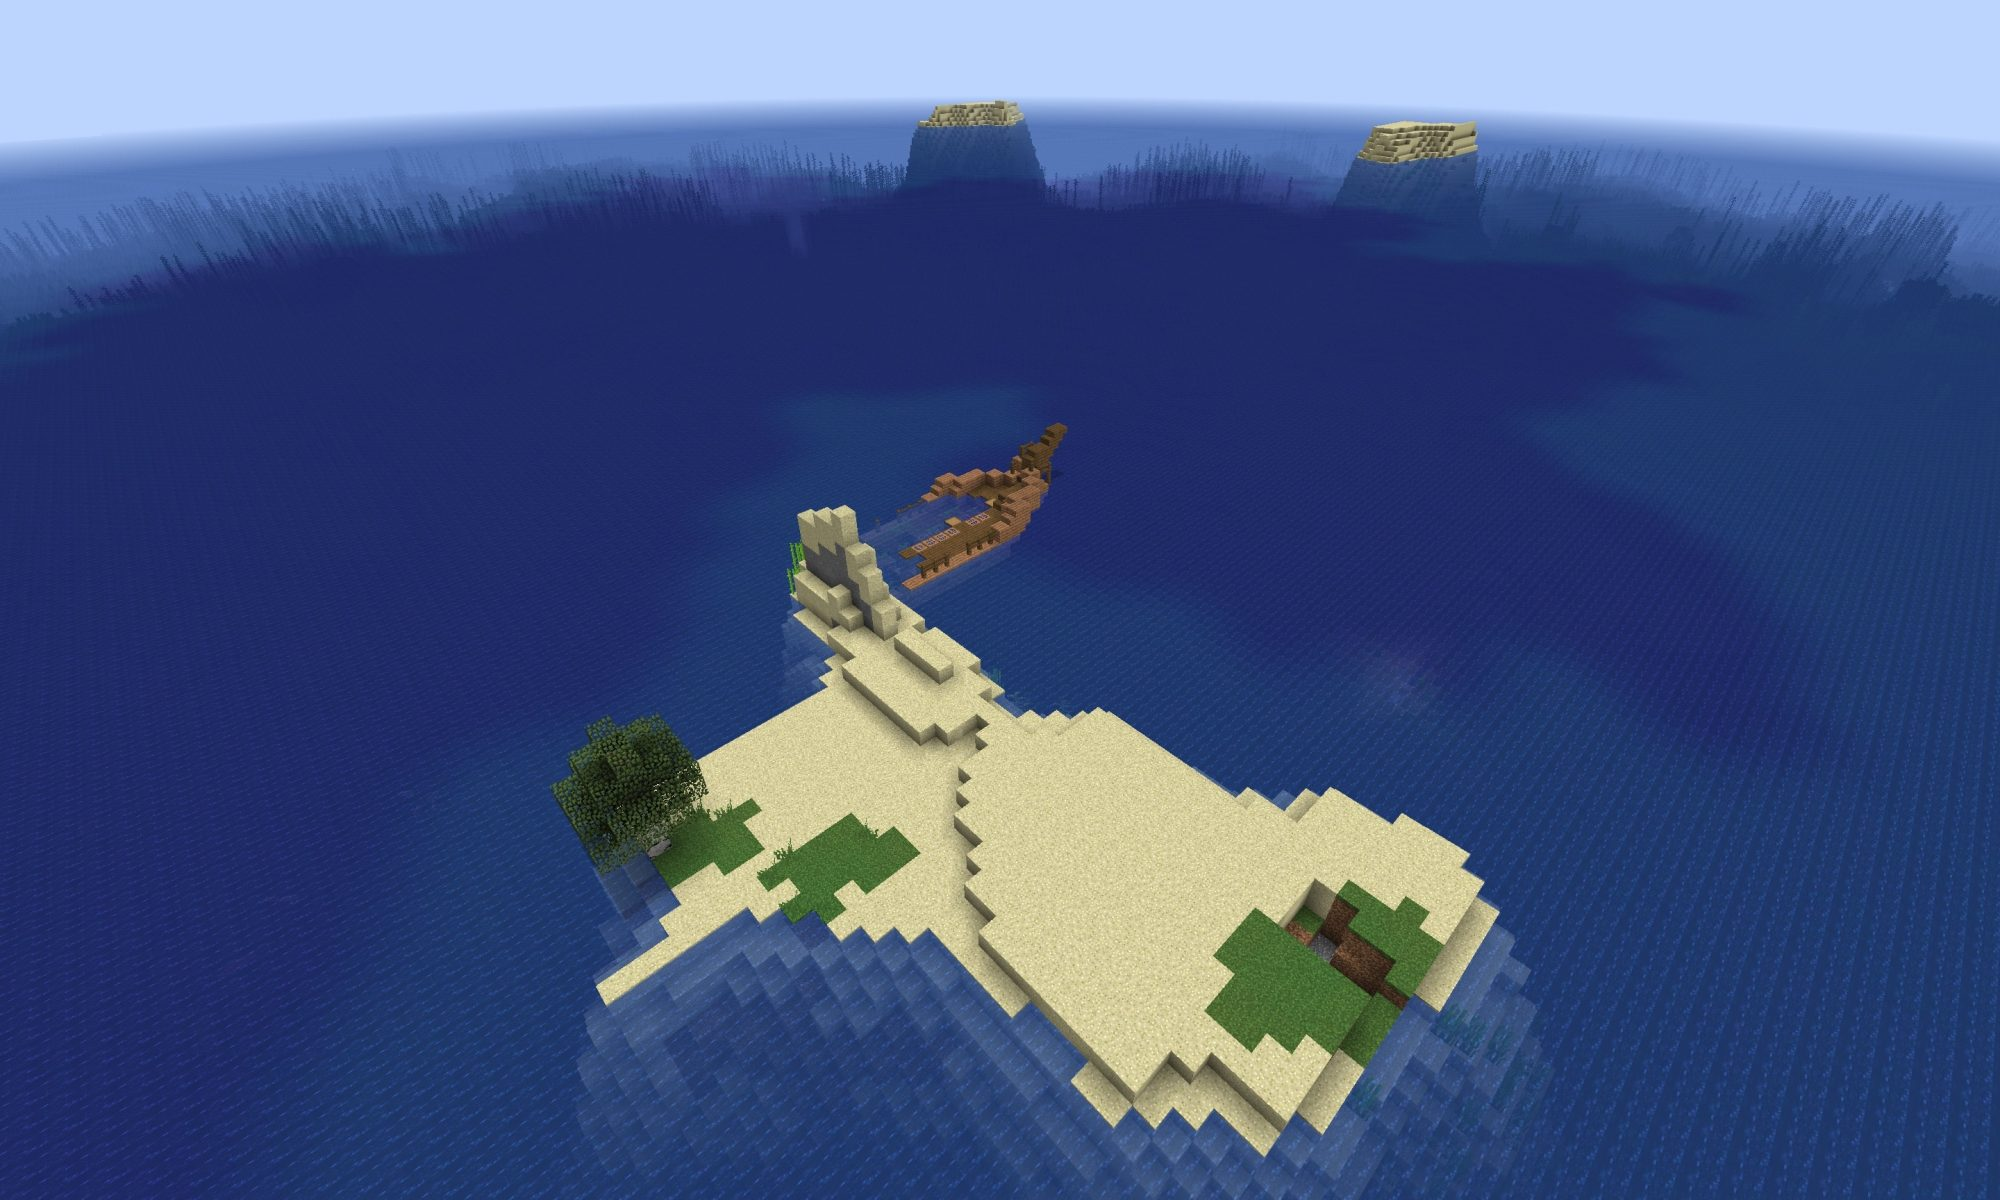 Shipwreck Survival Island - Minecraft 1.13 Seed - Minecraft Seed HQ